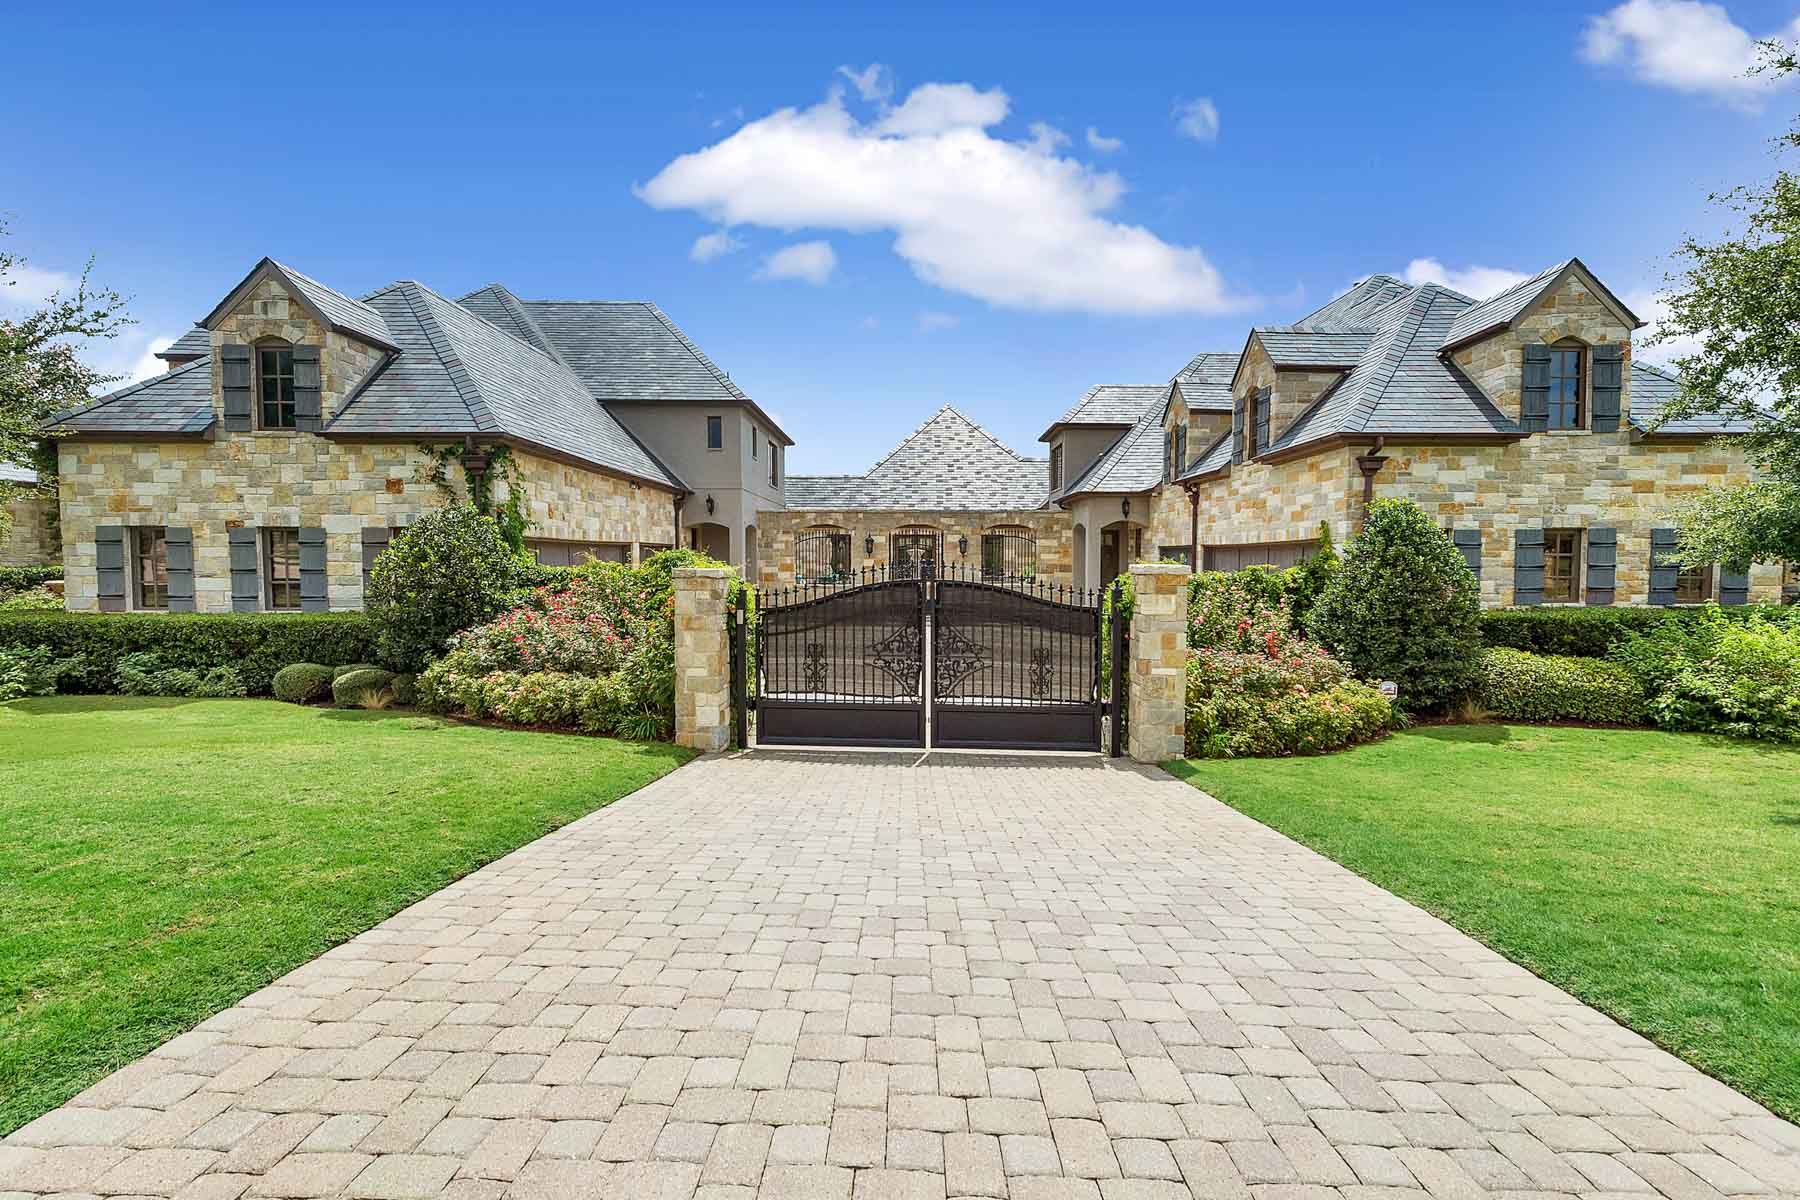 Maison unifamiliale pour l Vente à Gated Oasis in Montserrat 4649 Saint Laurent Court Fort Worth, Texas, 76126 États-Unis